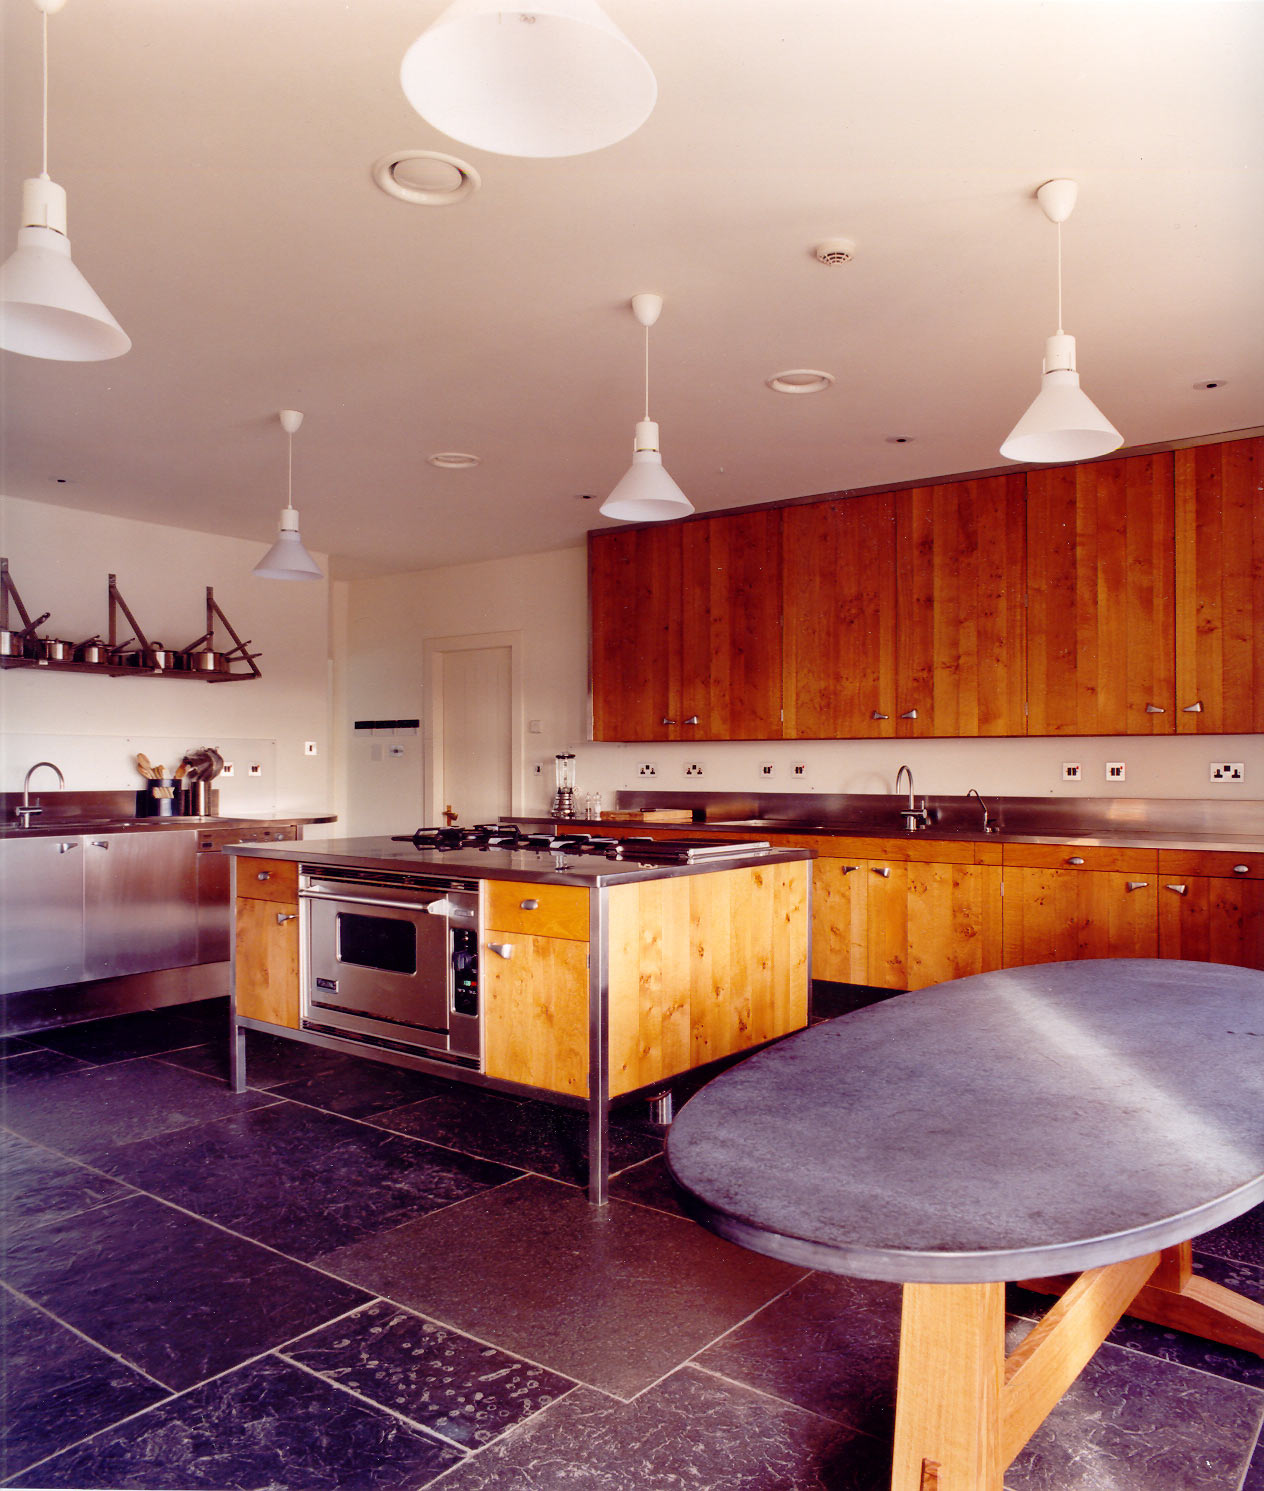 Bespoke kitchen in oak and stainless steel in a castle, Jersey